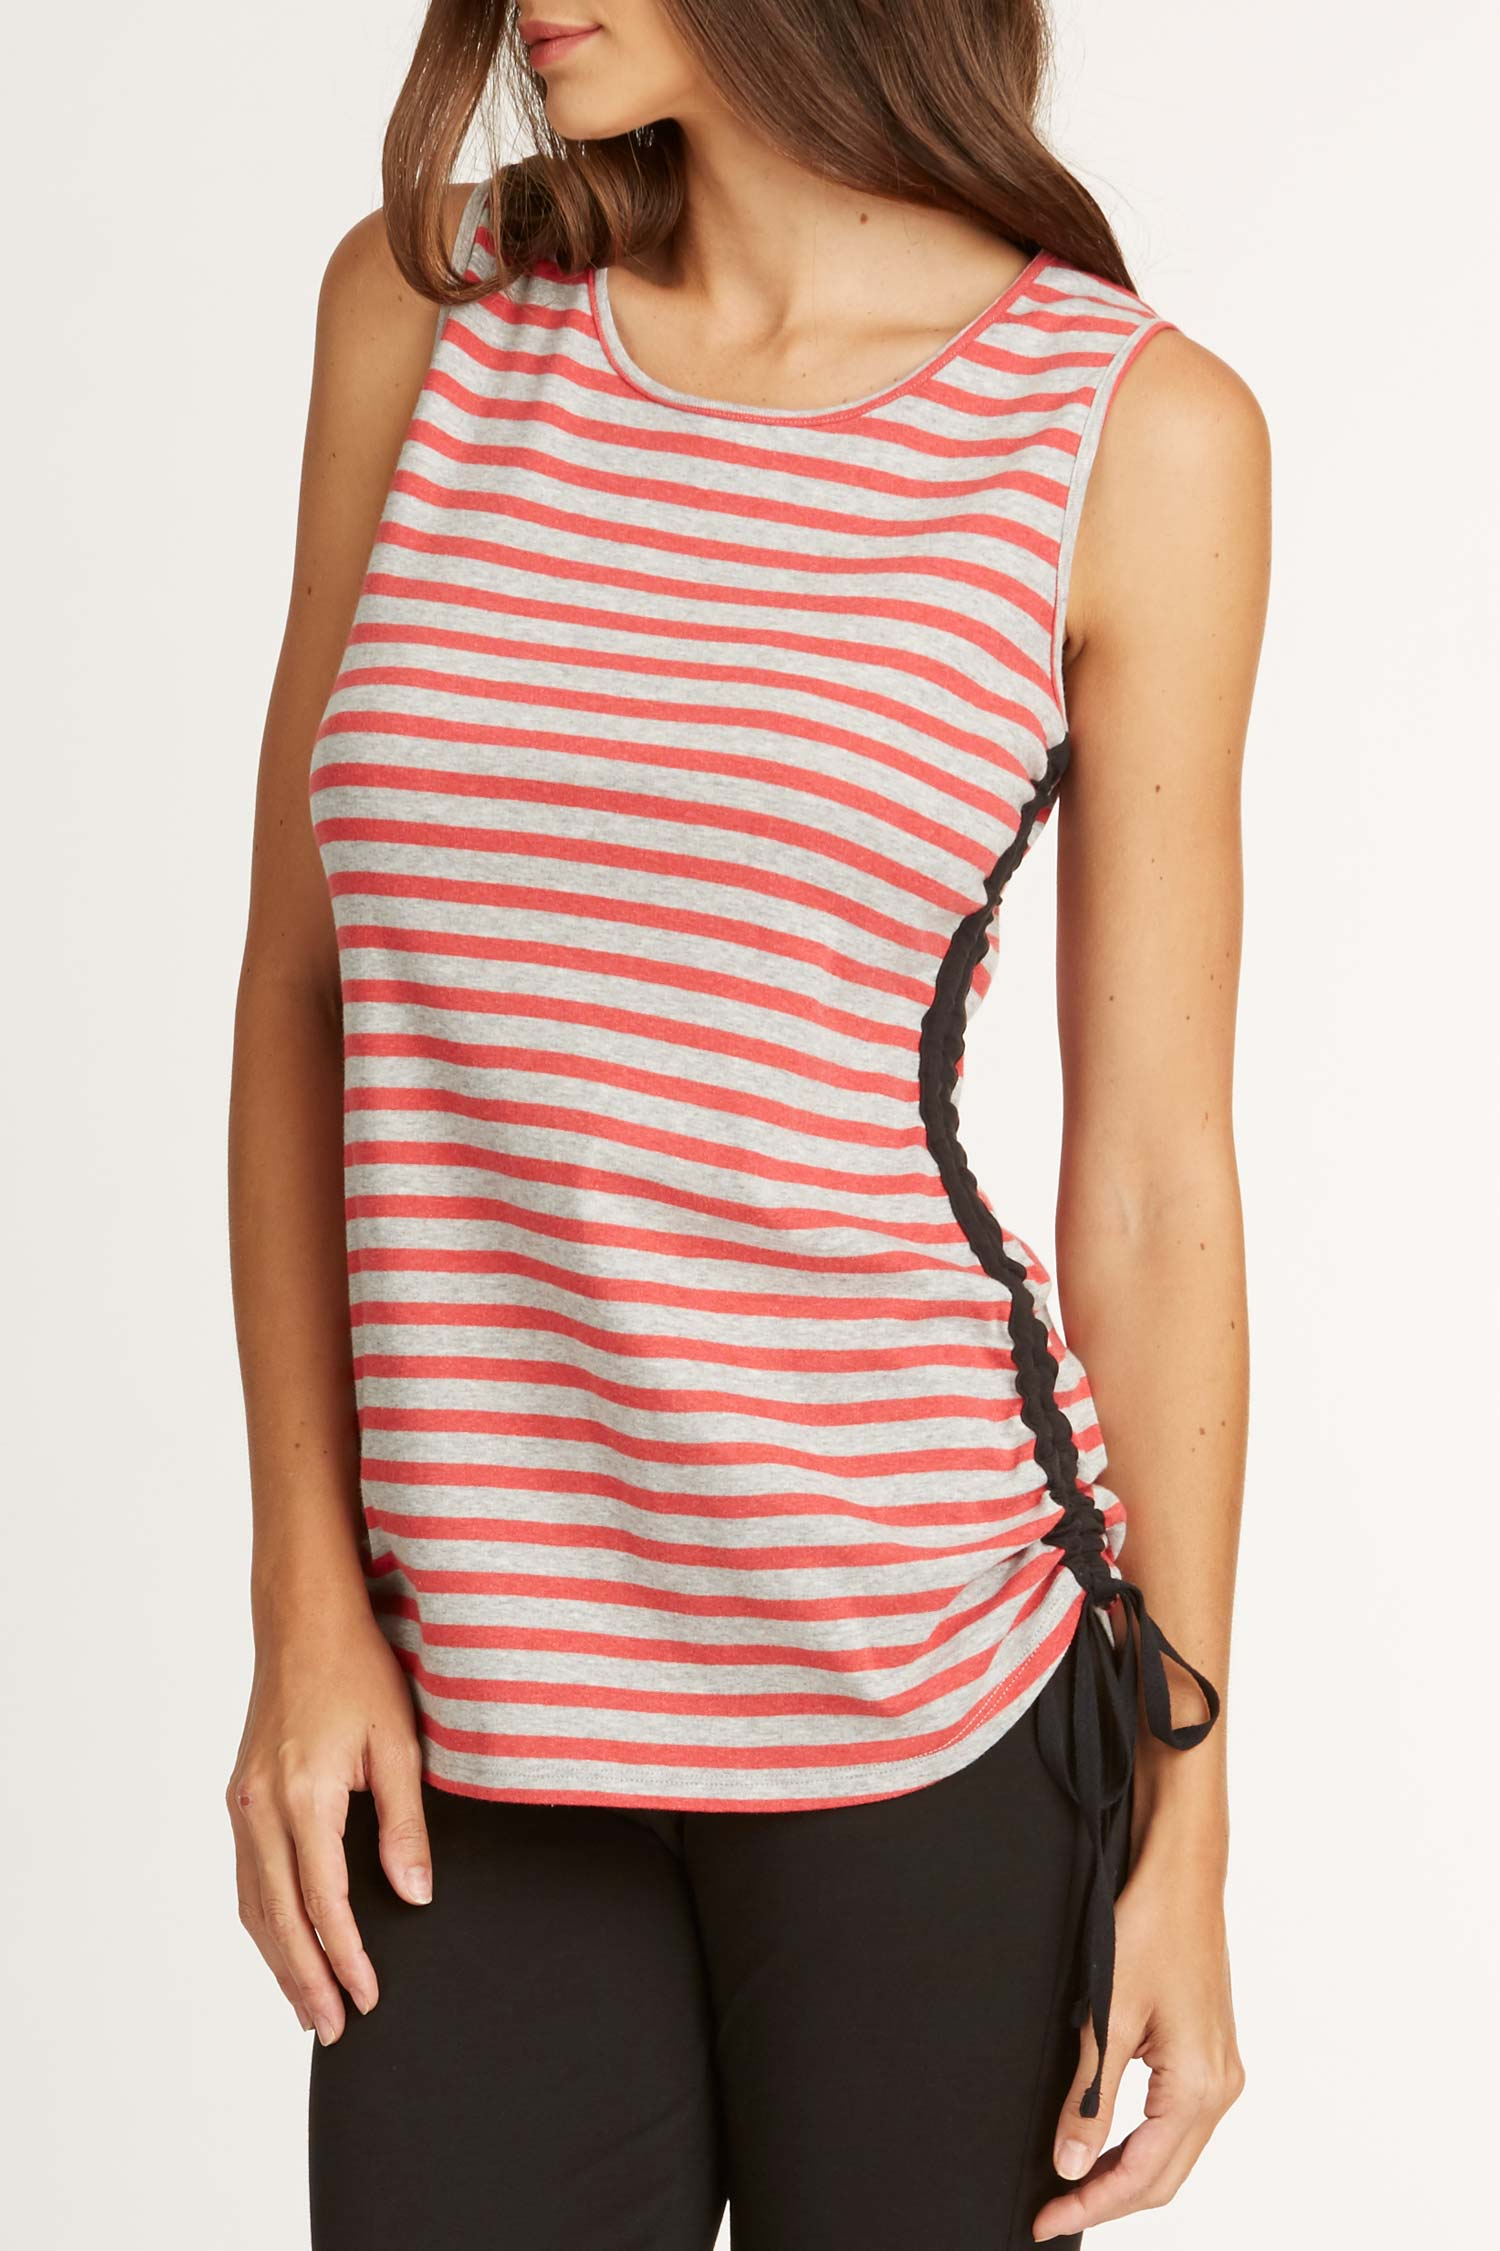 Womens tank top red gray stripes organic cotton sustainable clothing